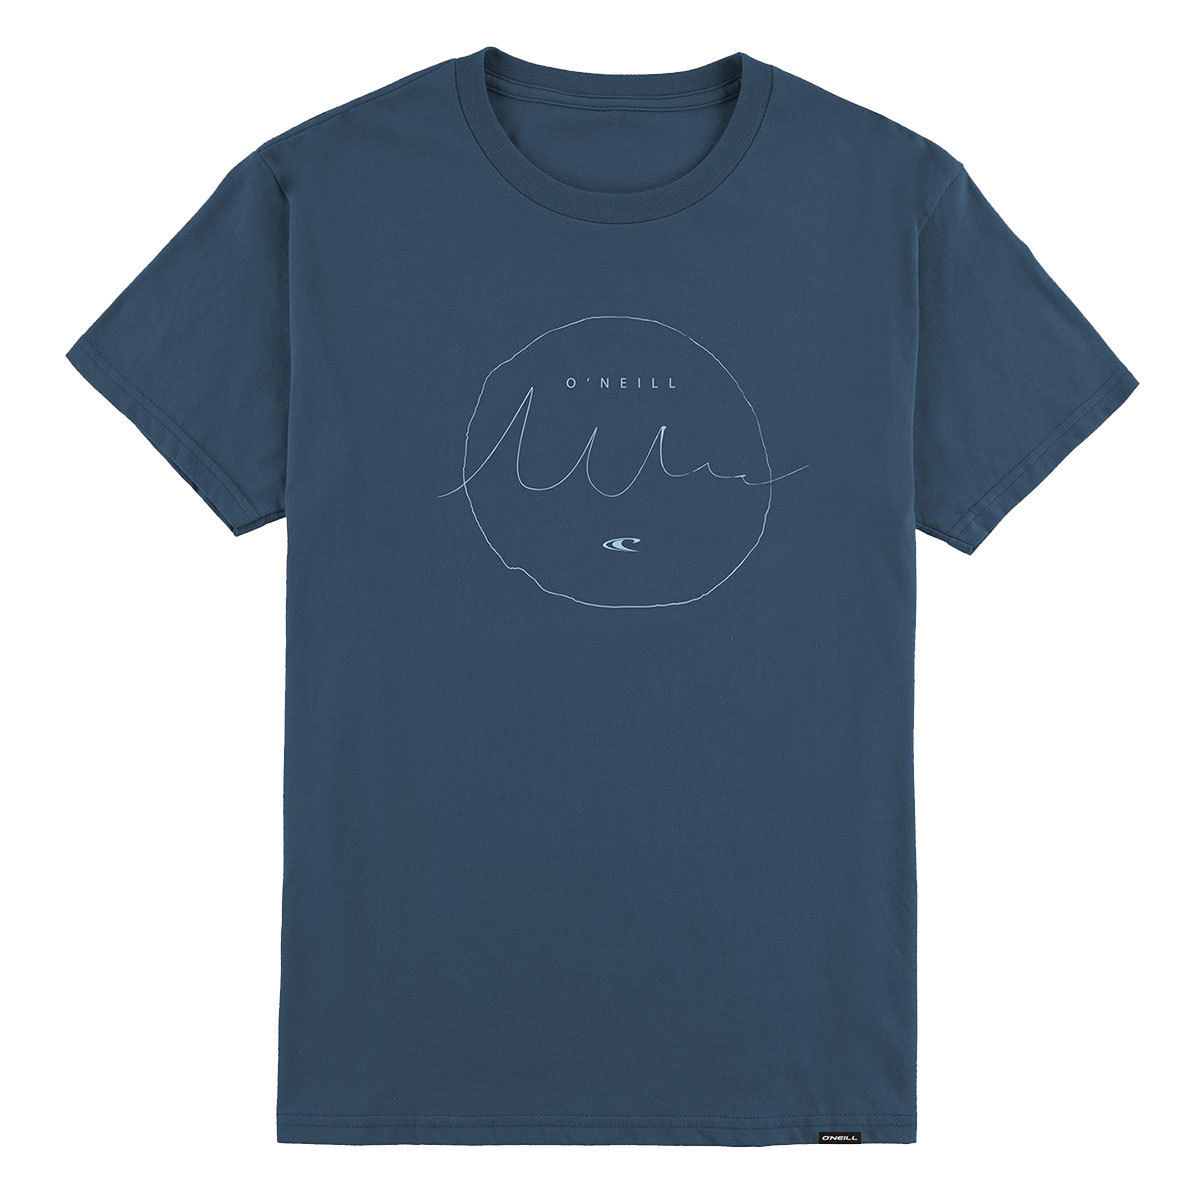 O'neill Guys' Interview Short-Sleeve Tee - Blue, L